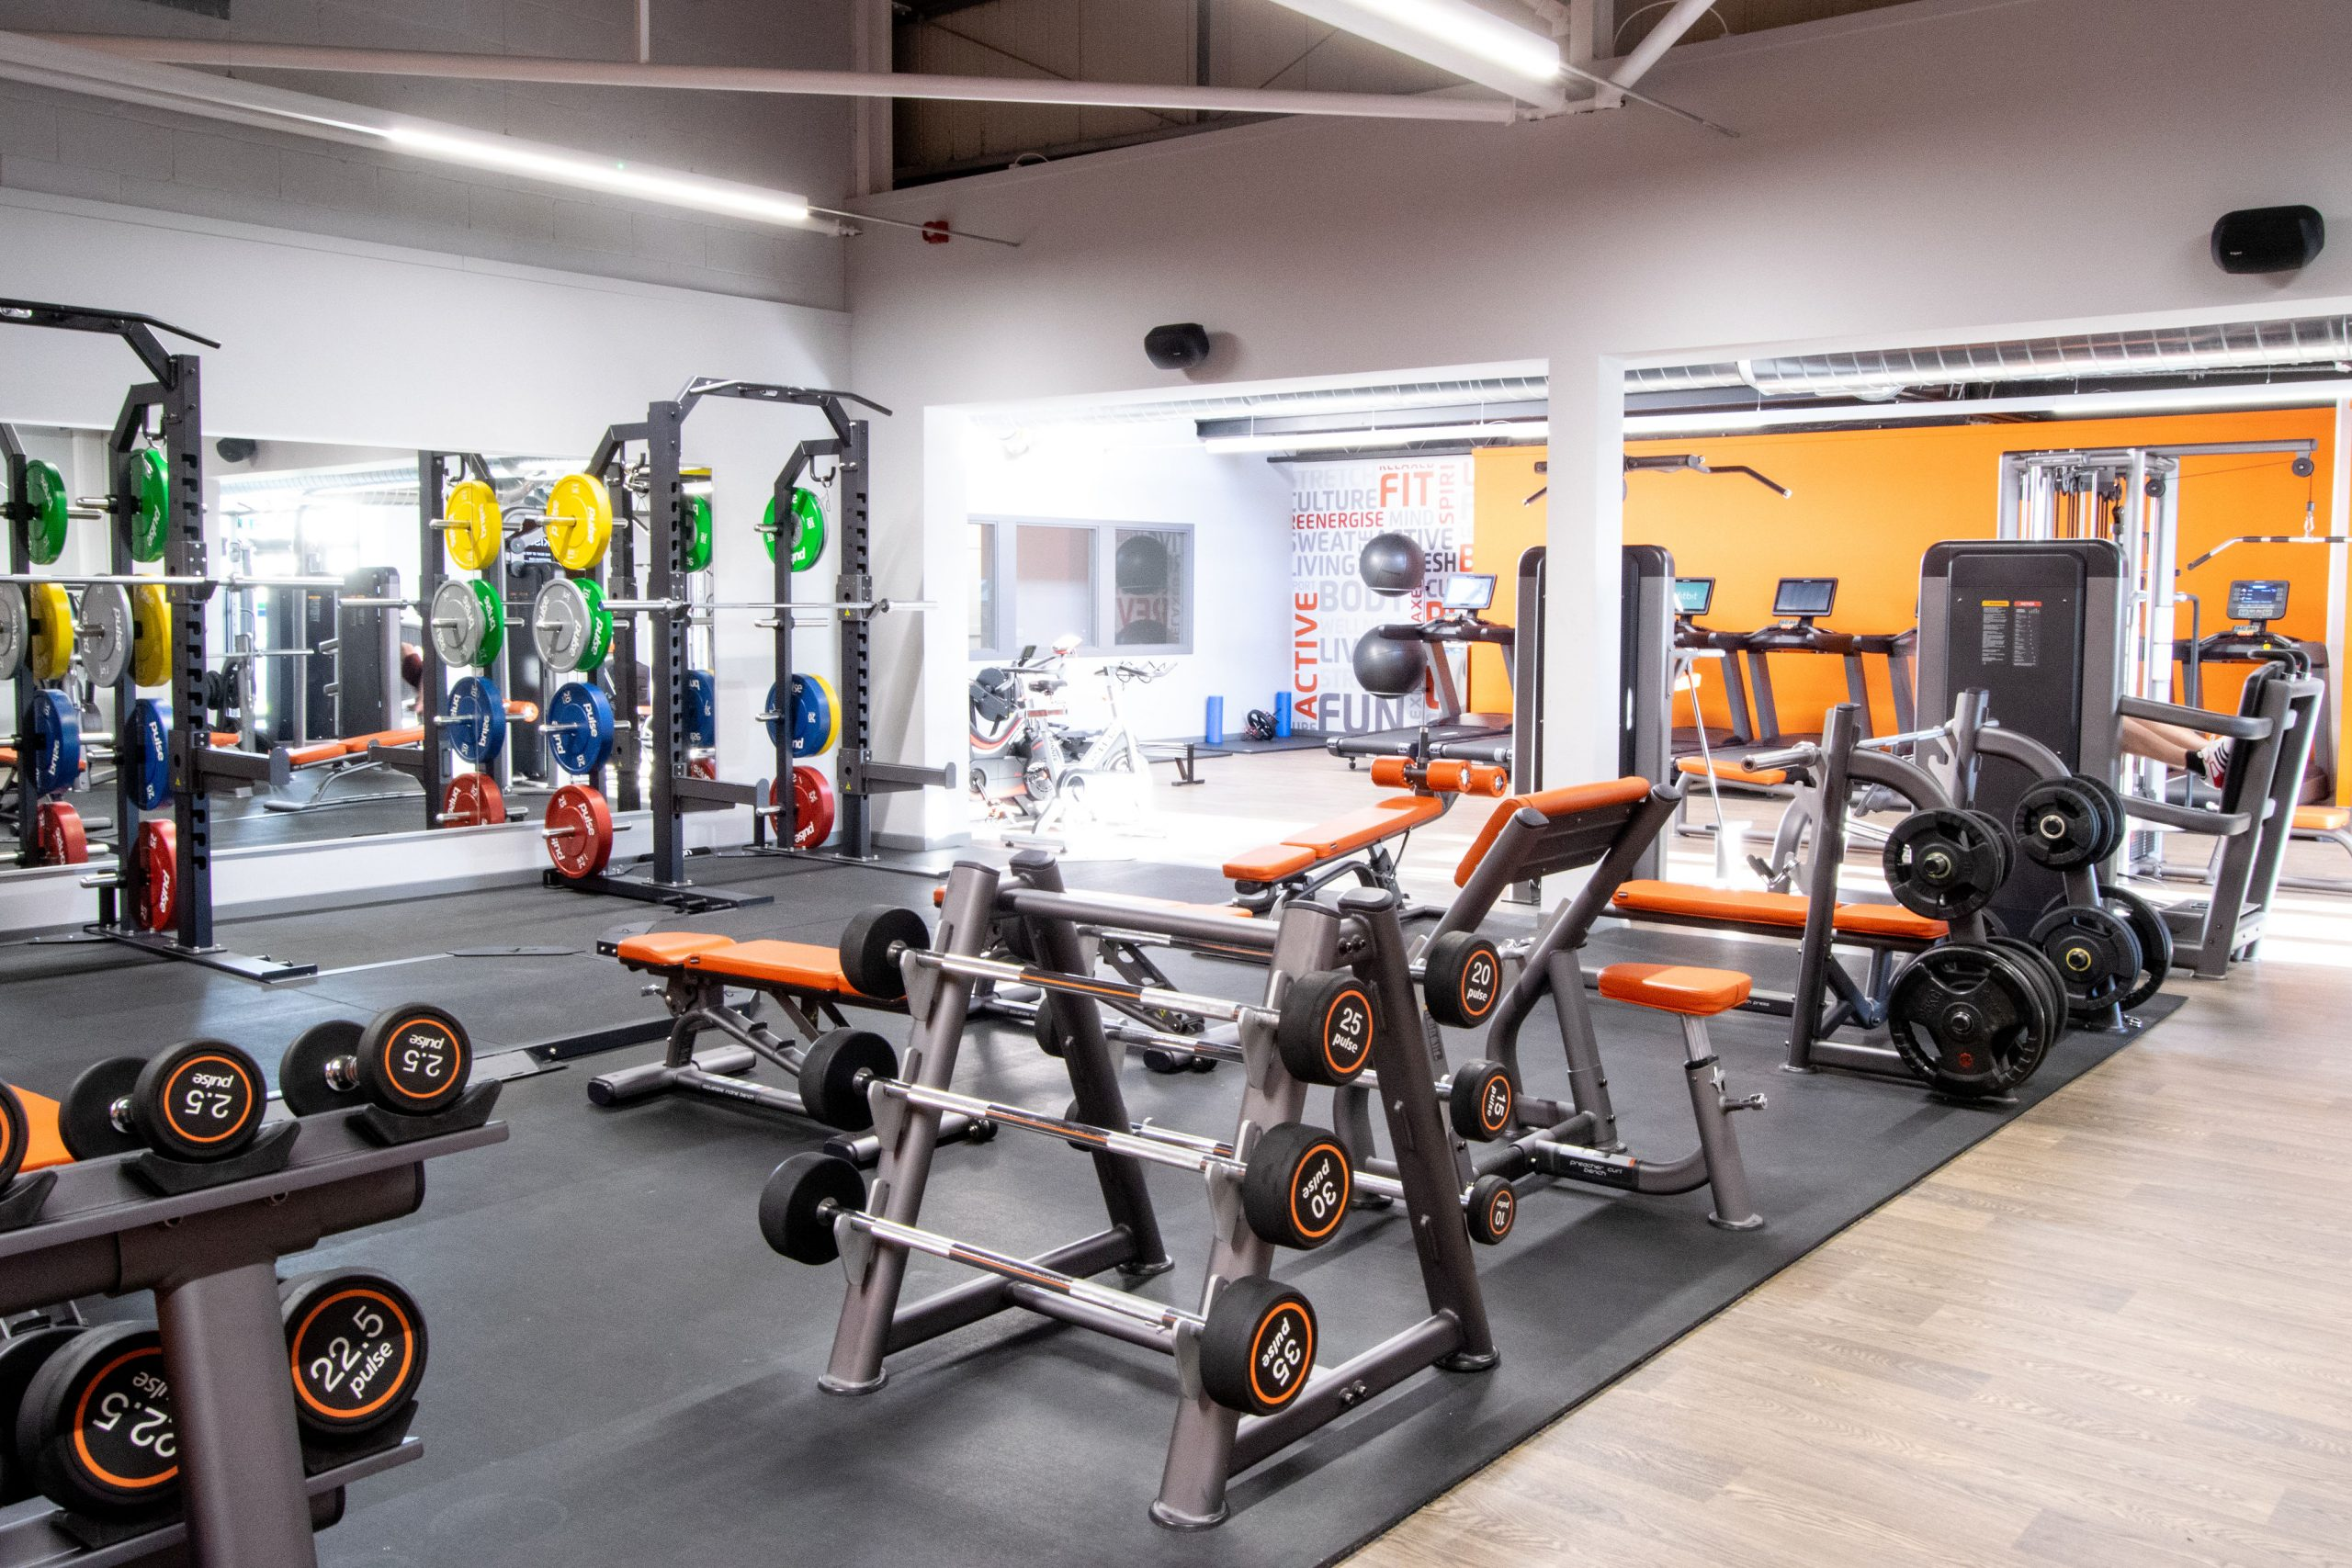 Fitness studio with varied workout machines